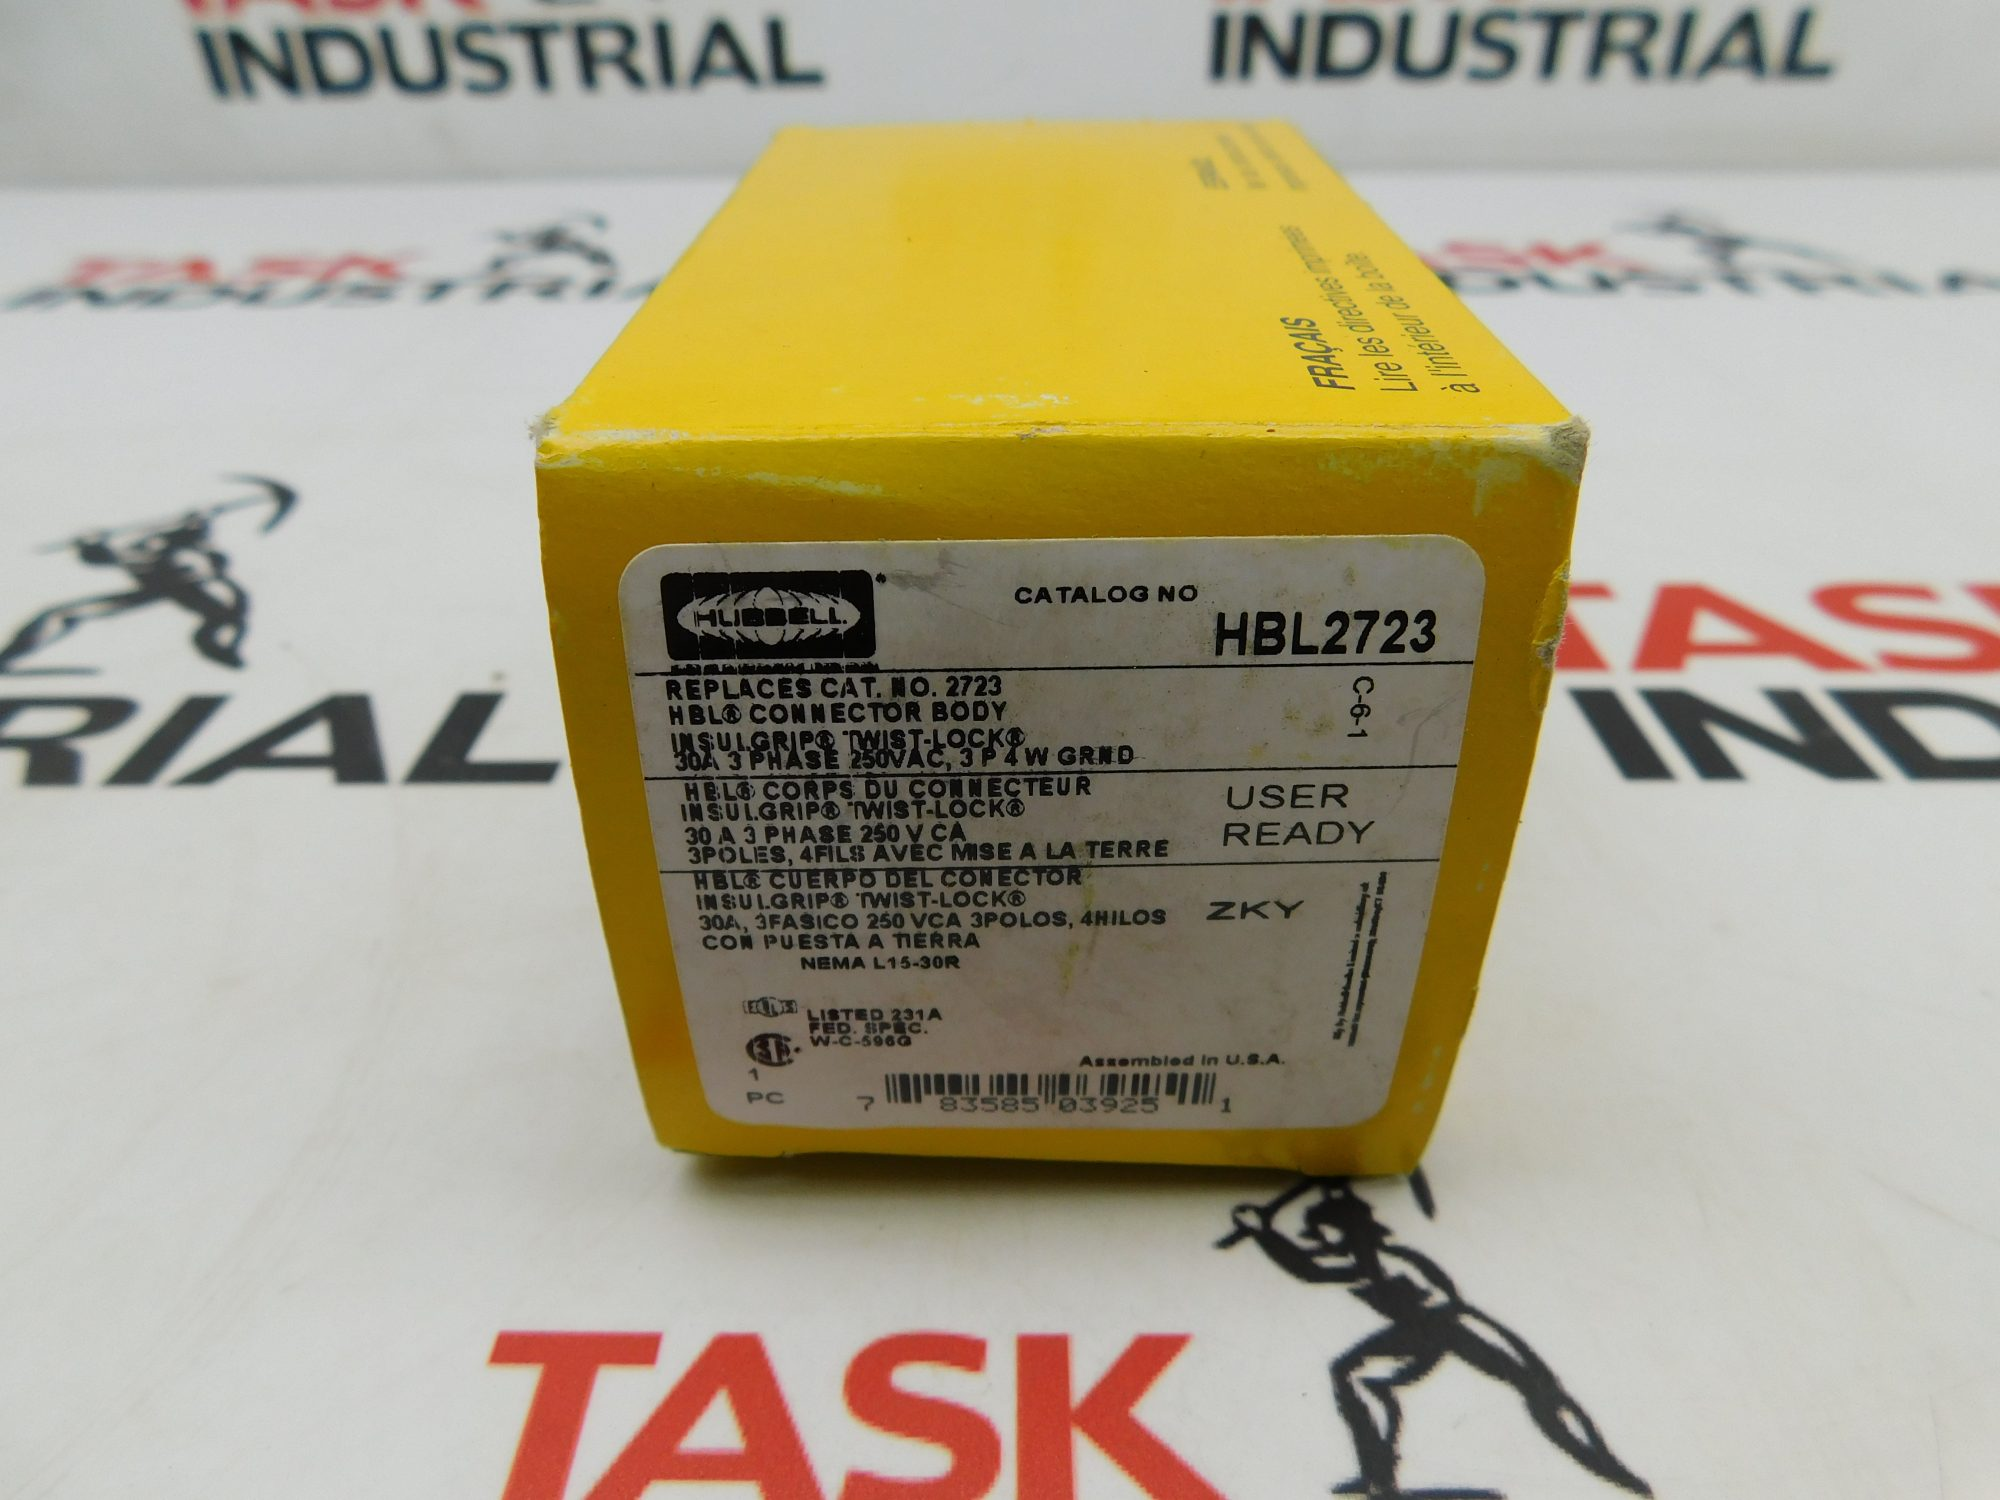 Hubbell CAT No. HBL2723 Connector 30A 3PH 3P 4W